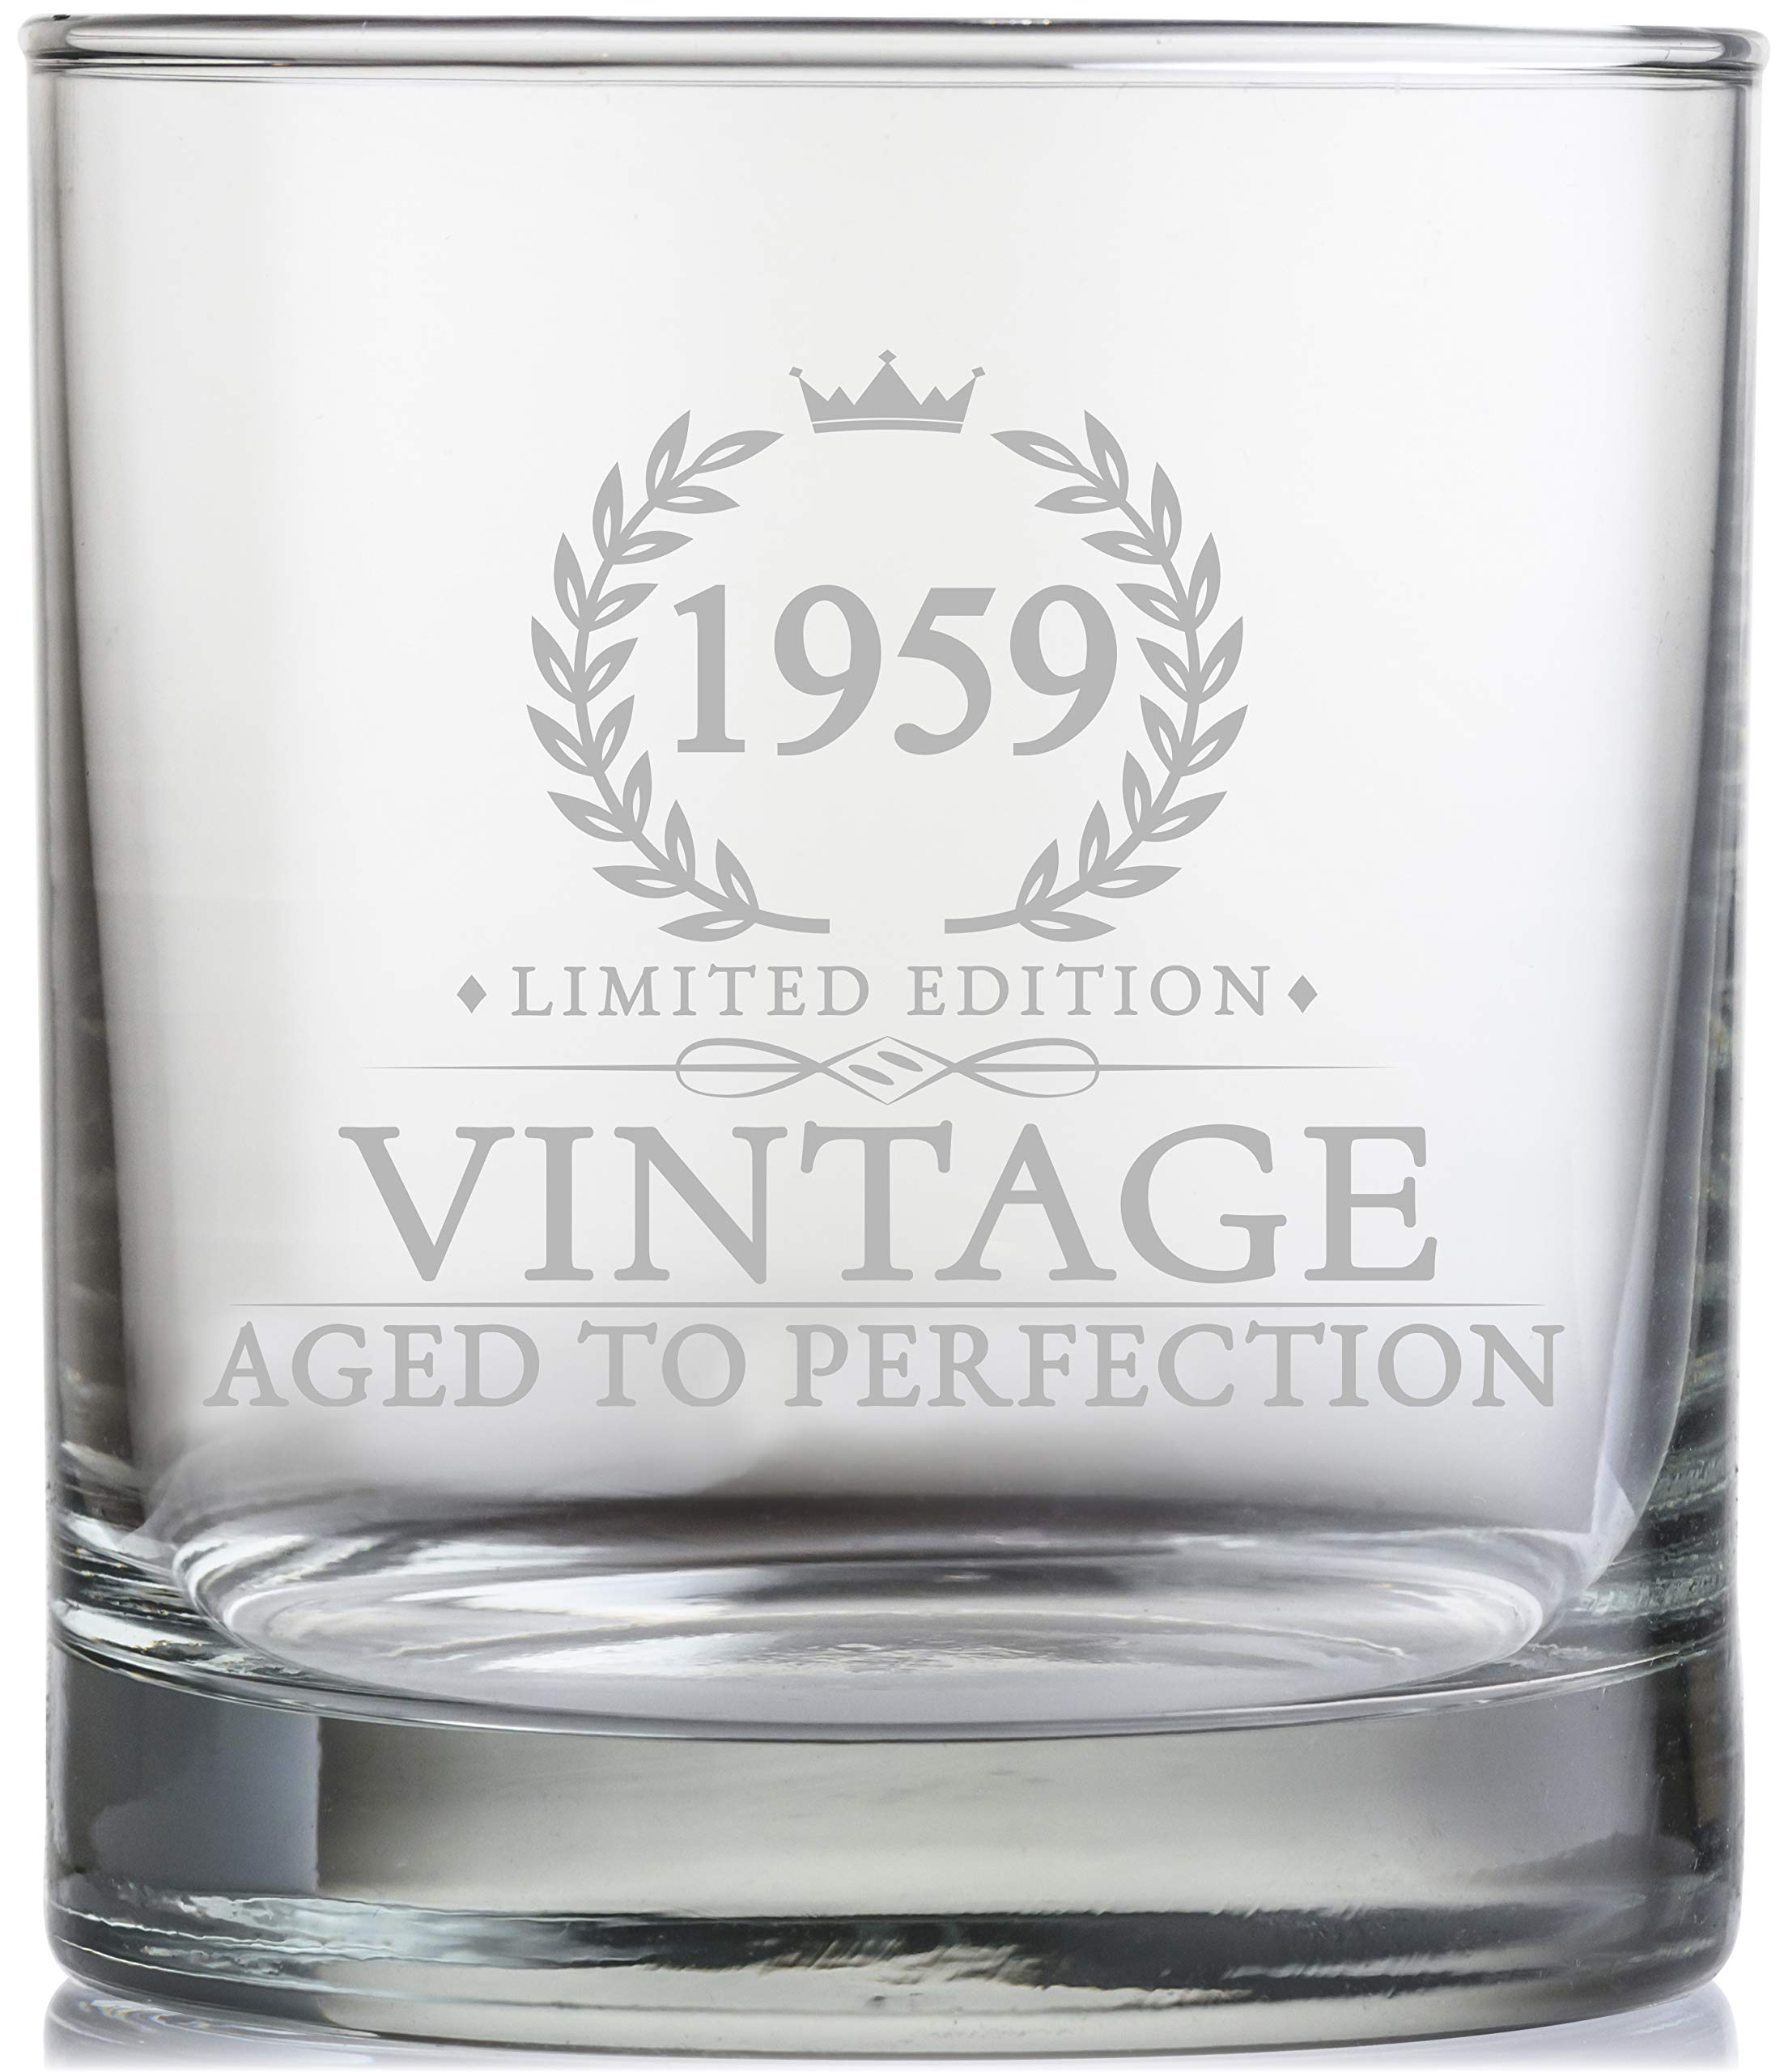 60th Birthday Gifts for Men Turning 60 Years Old - 11 oz. Vintage 1959 Whiskey Glass - Funny Sixtieth Whisky, Bourbon, Scotch Gift Ideas, Party Decorations and Supplies for Him, Husband, Dad, Man